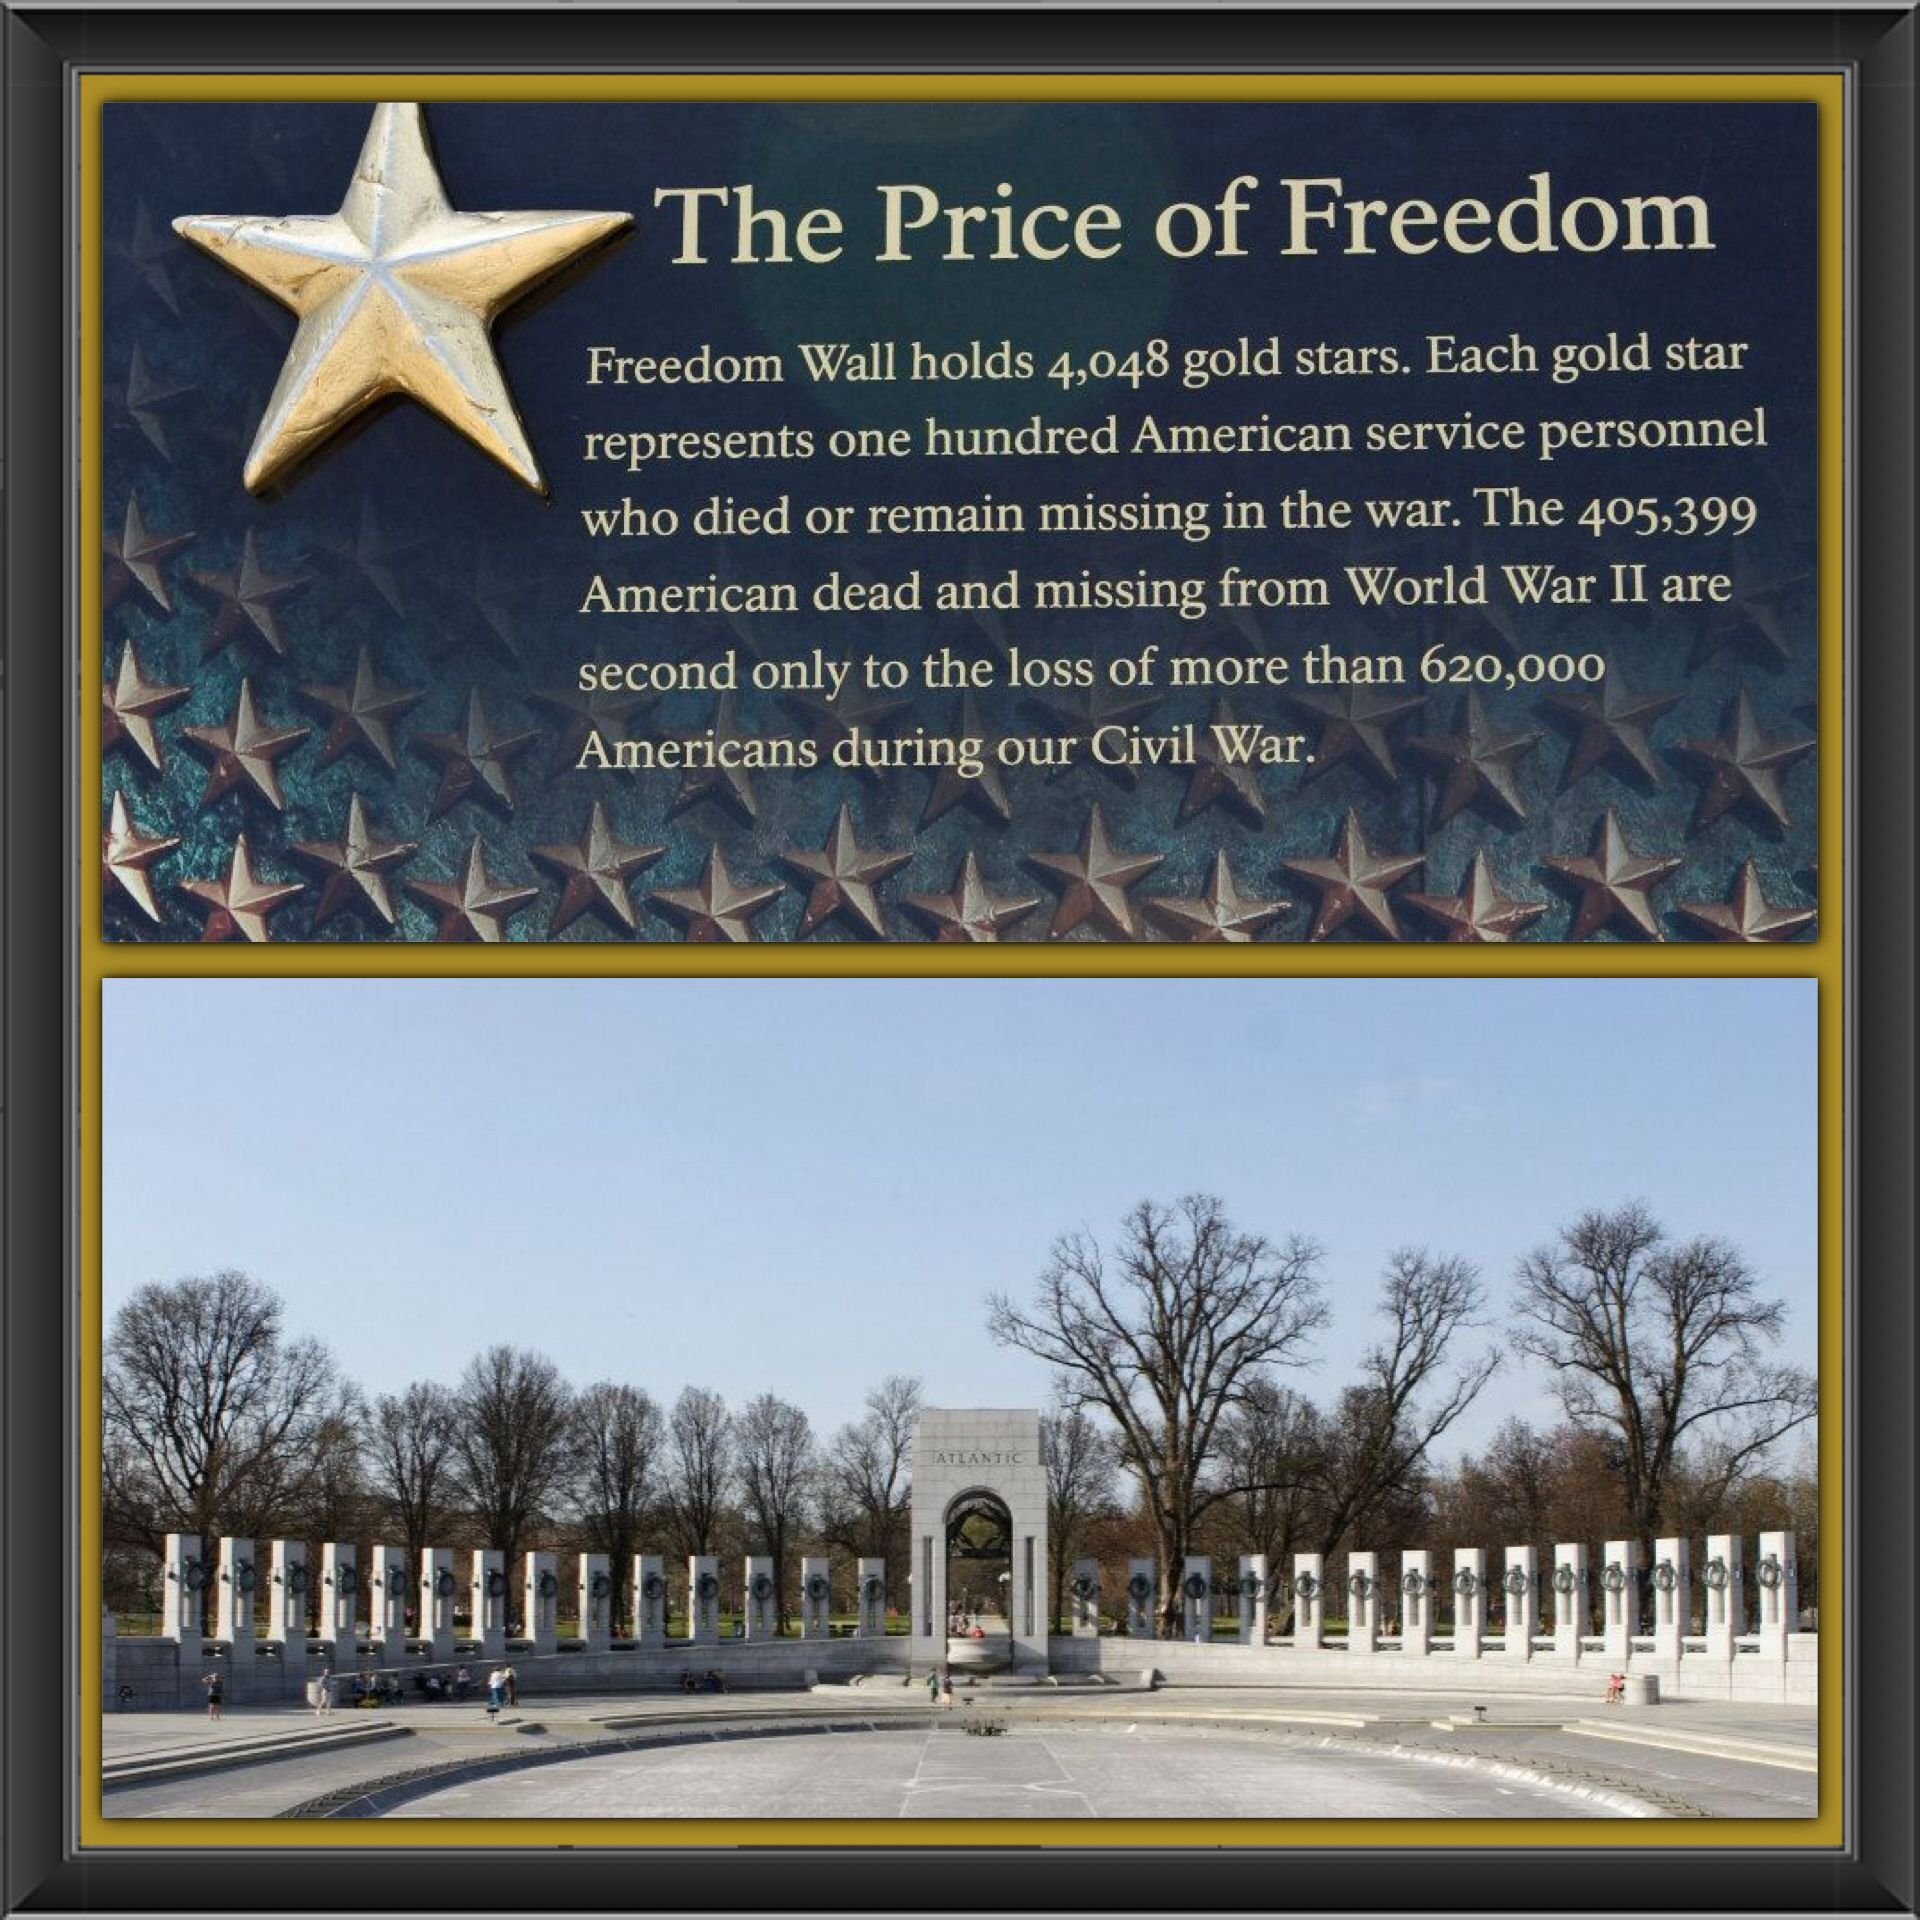 Wwii Memorial 405 399 Men And Women Are Either Dead Or Missing From Wwii Alone According To The Gold Star The Price Freedom Wall Faith Hope Love The Freedom